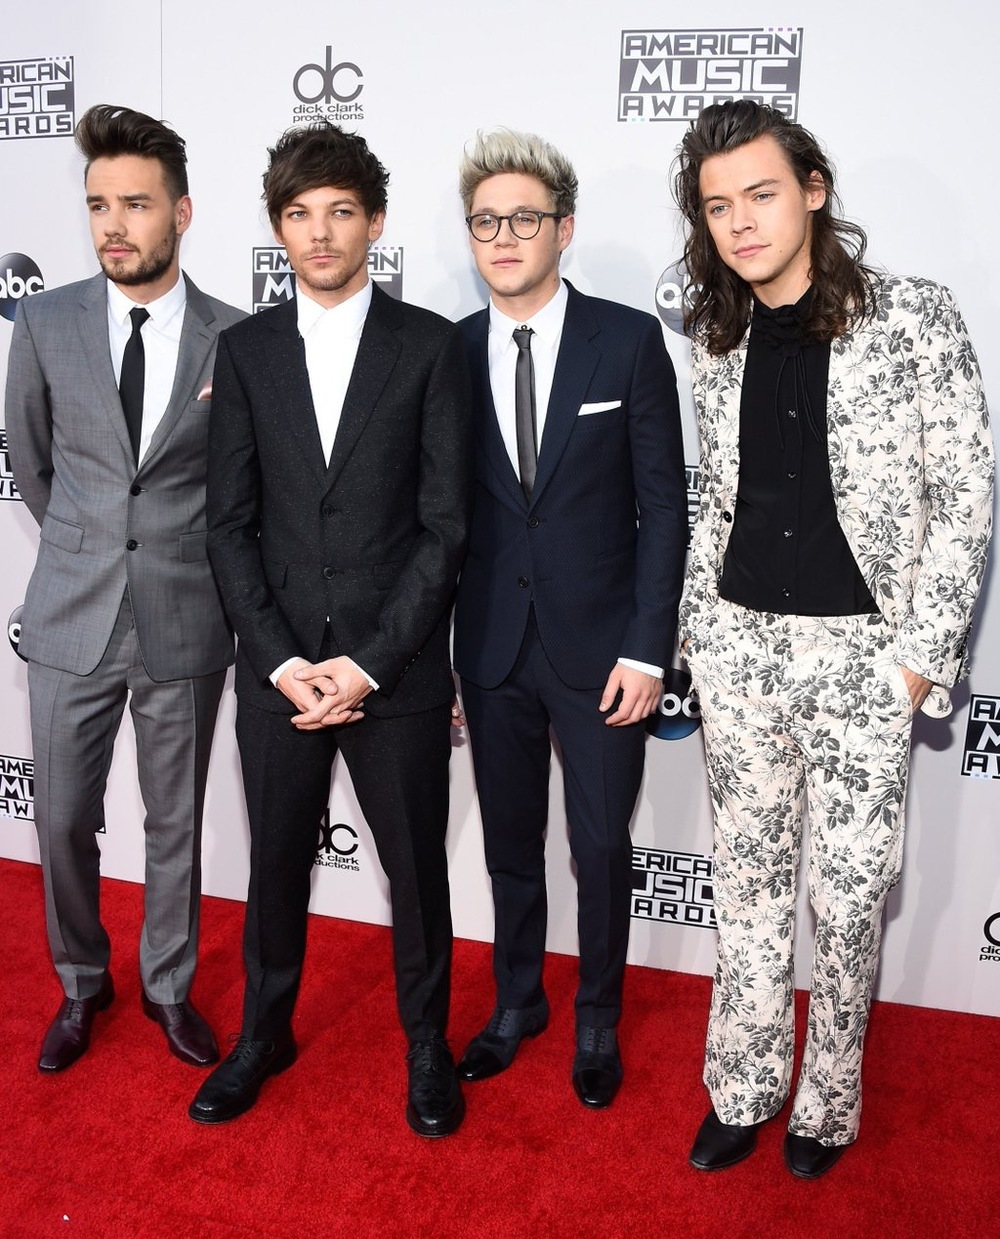 sam-c-perry-one-direction-amas-american-music-awards-red-carpet-2015